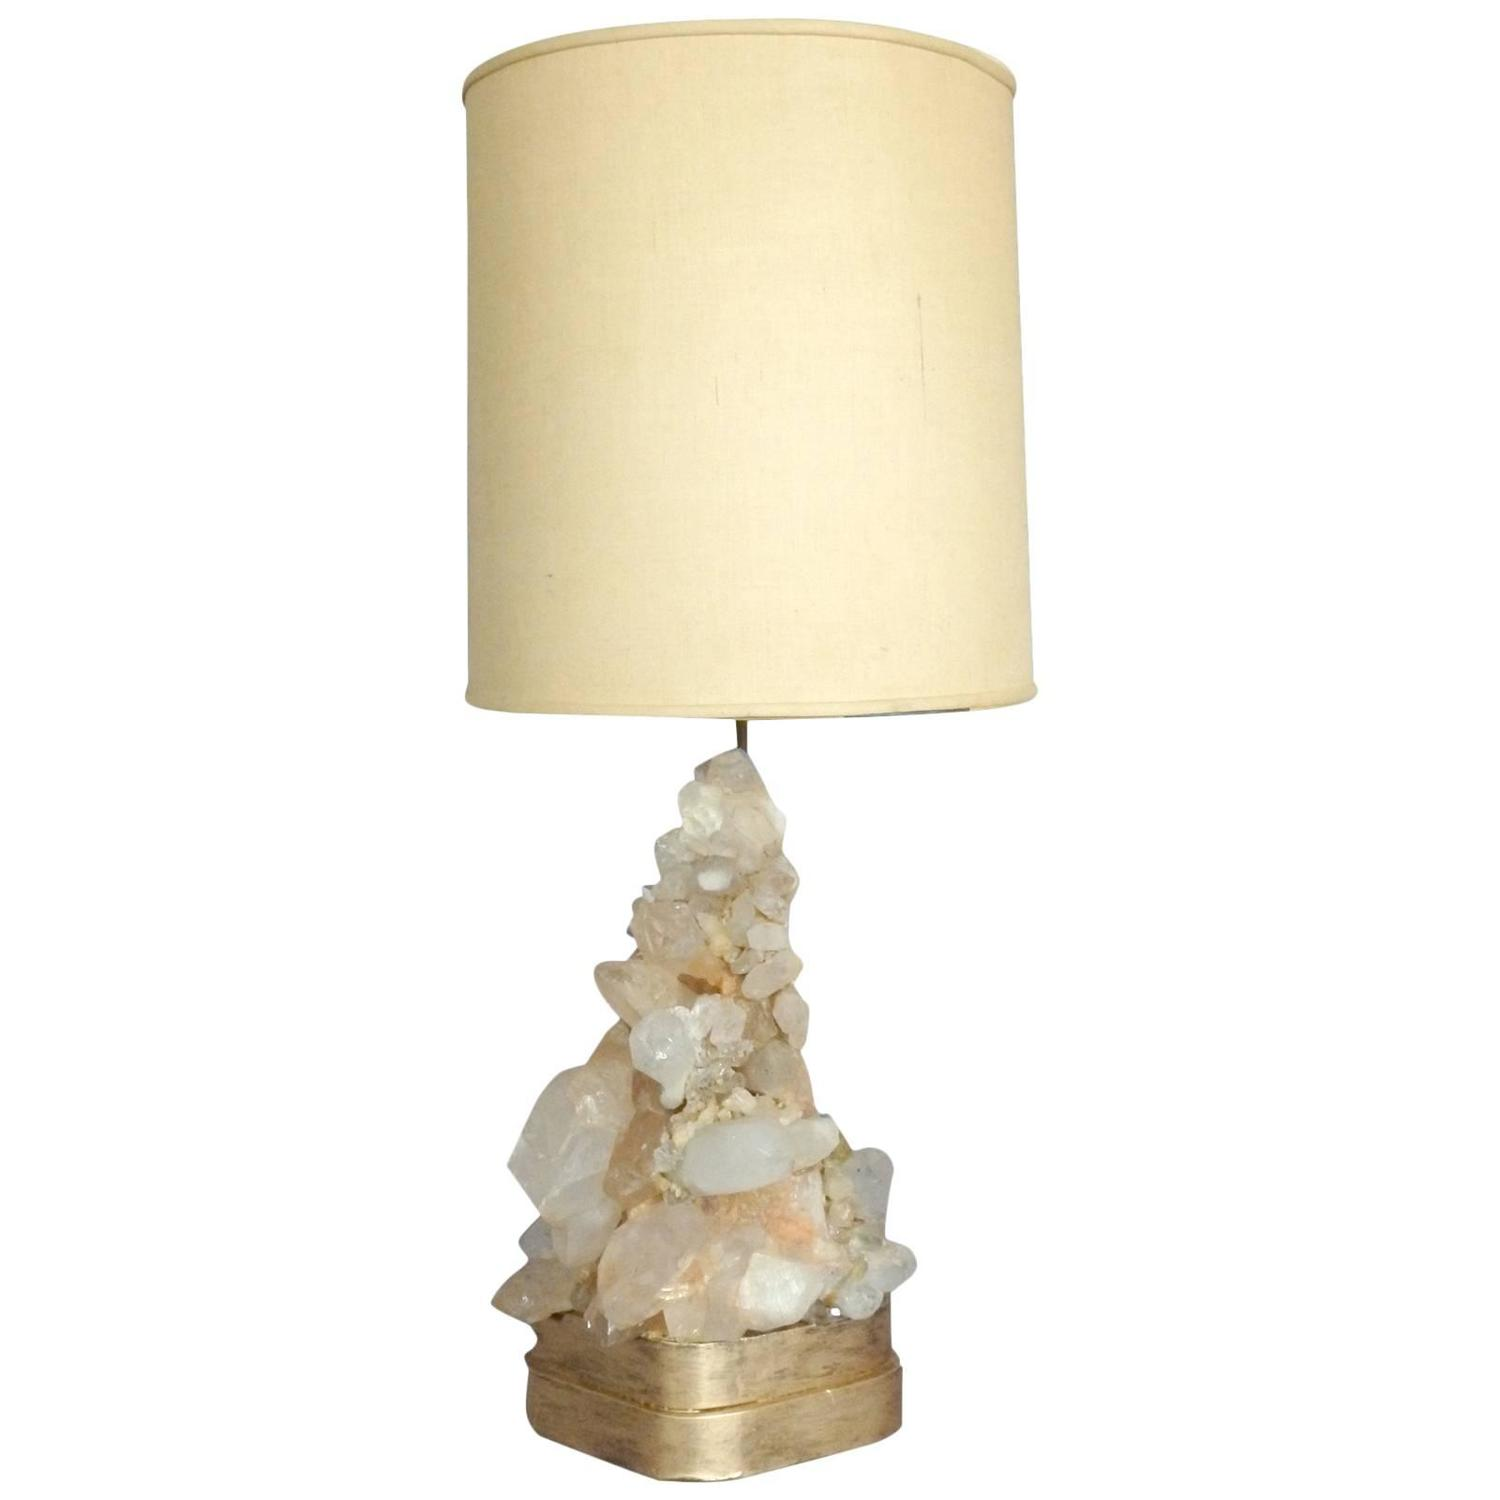 carole stupell rock quartz crystal table lamp at 1stdibs. Black Bedroom Furniture Sets. Home Design Ideas